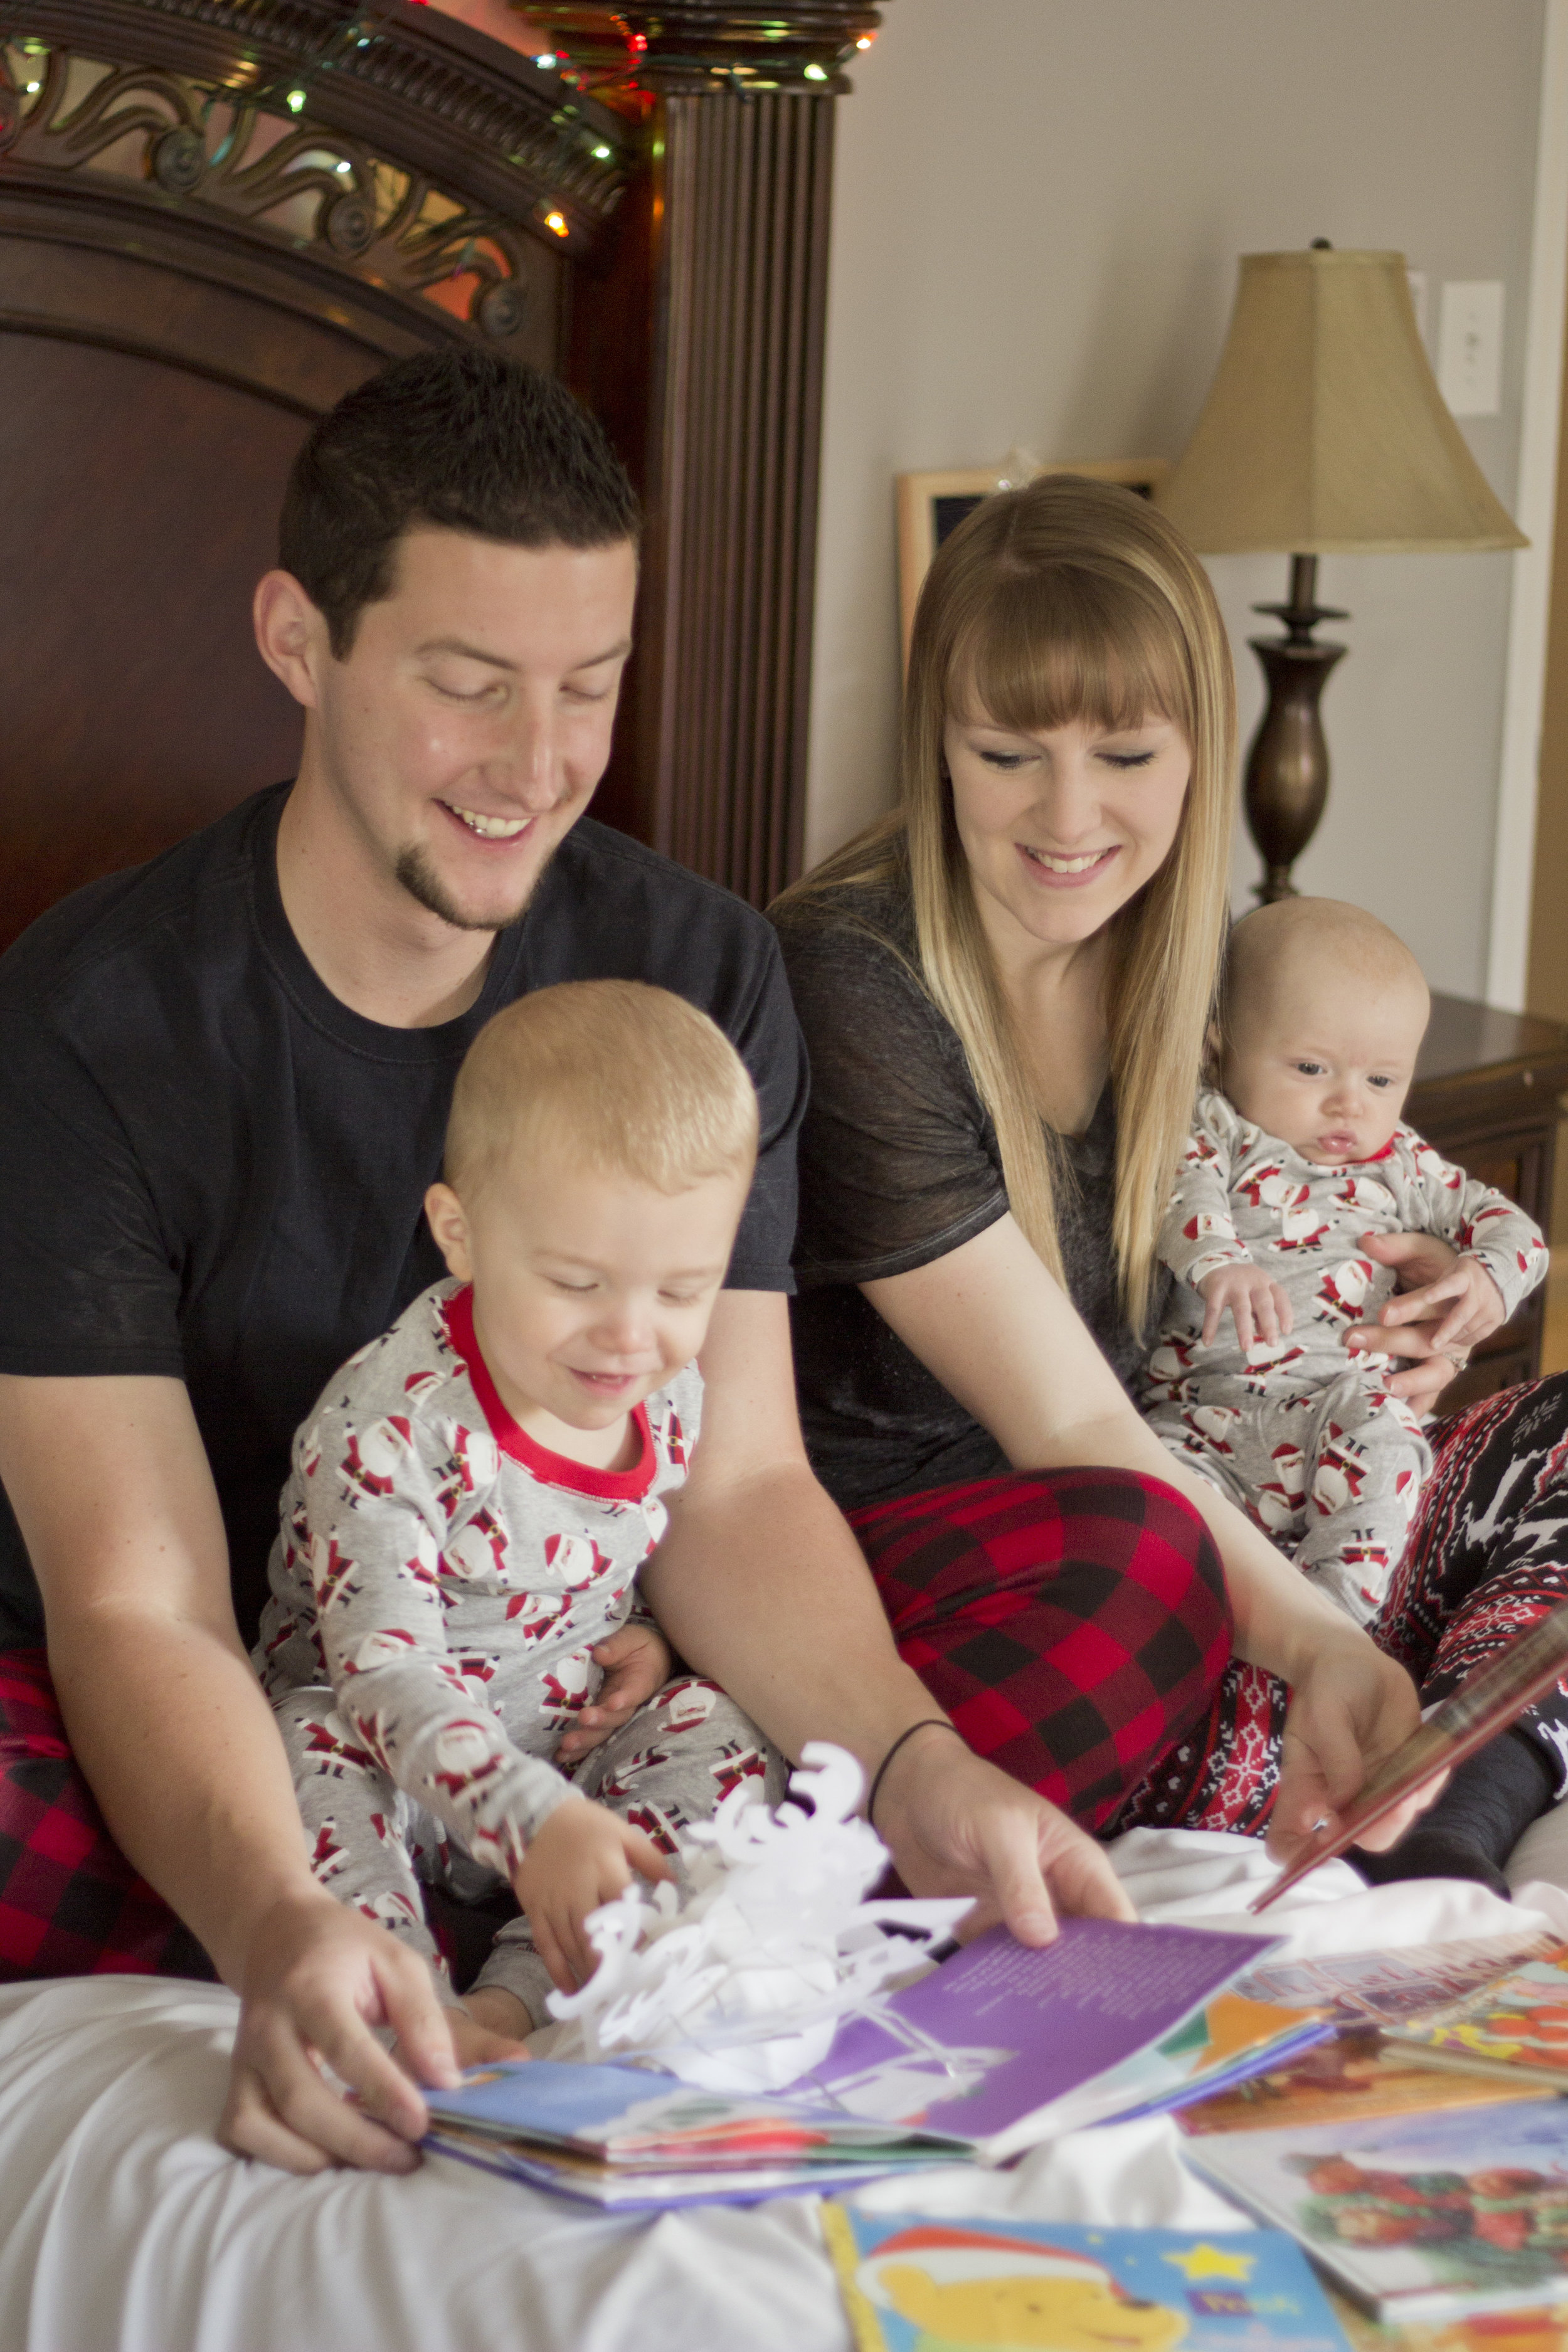 The most adorable Christmas session ever! The pajamas, the decor... and the cutest family!